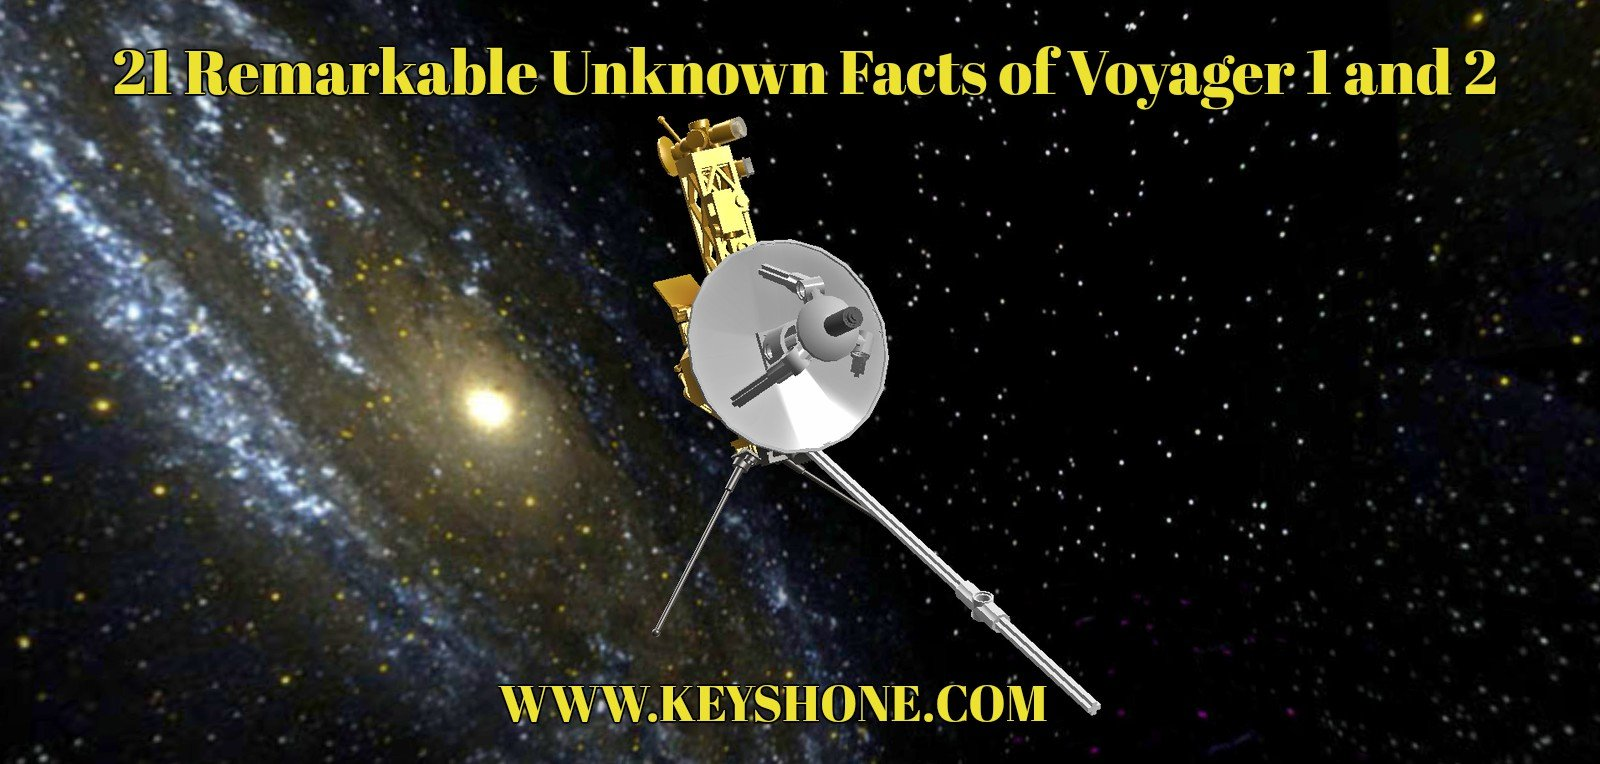 21 Remarkable Unknown Facts of Voyager 1 and 2